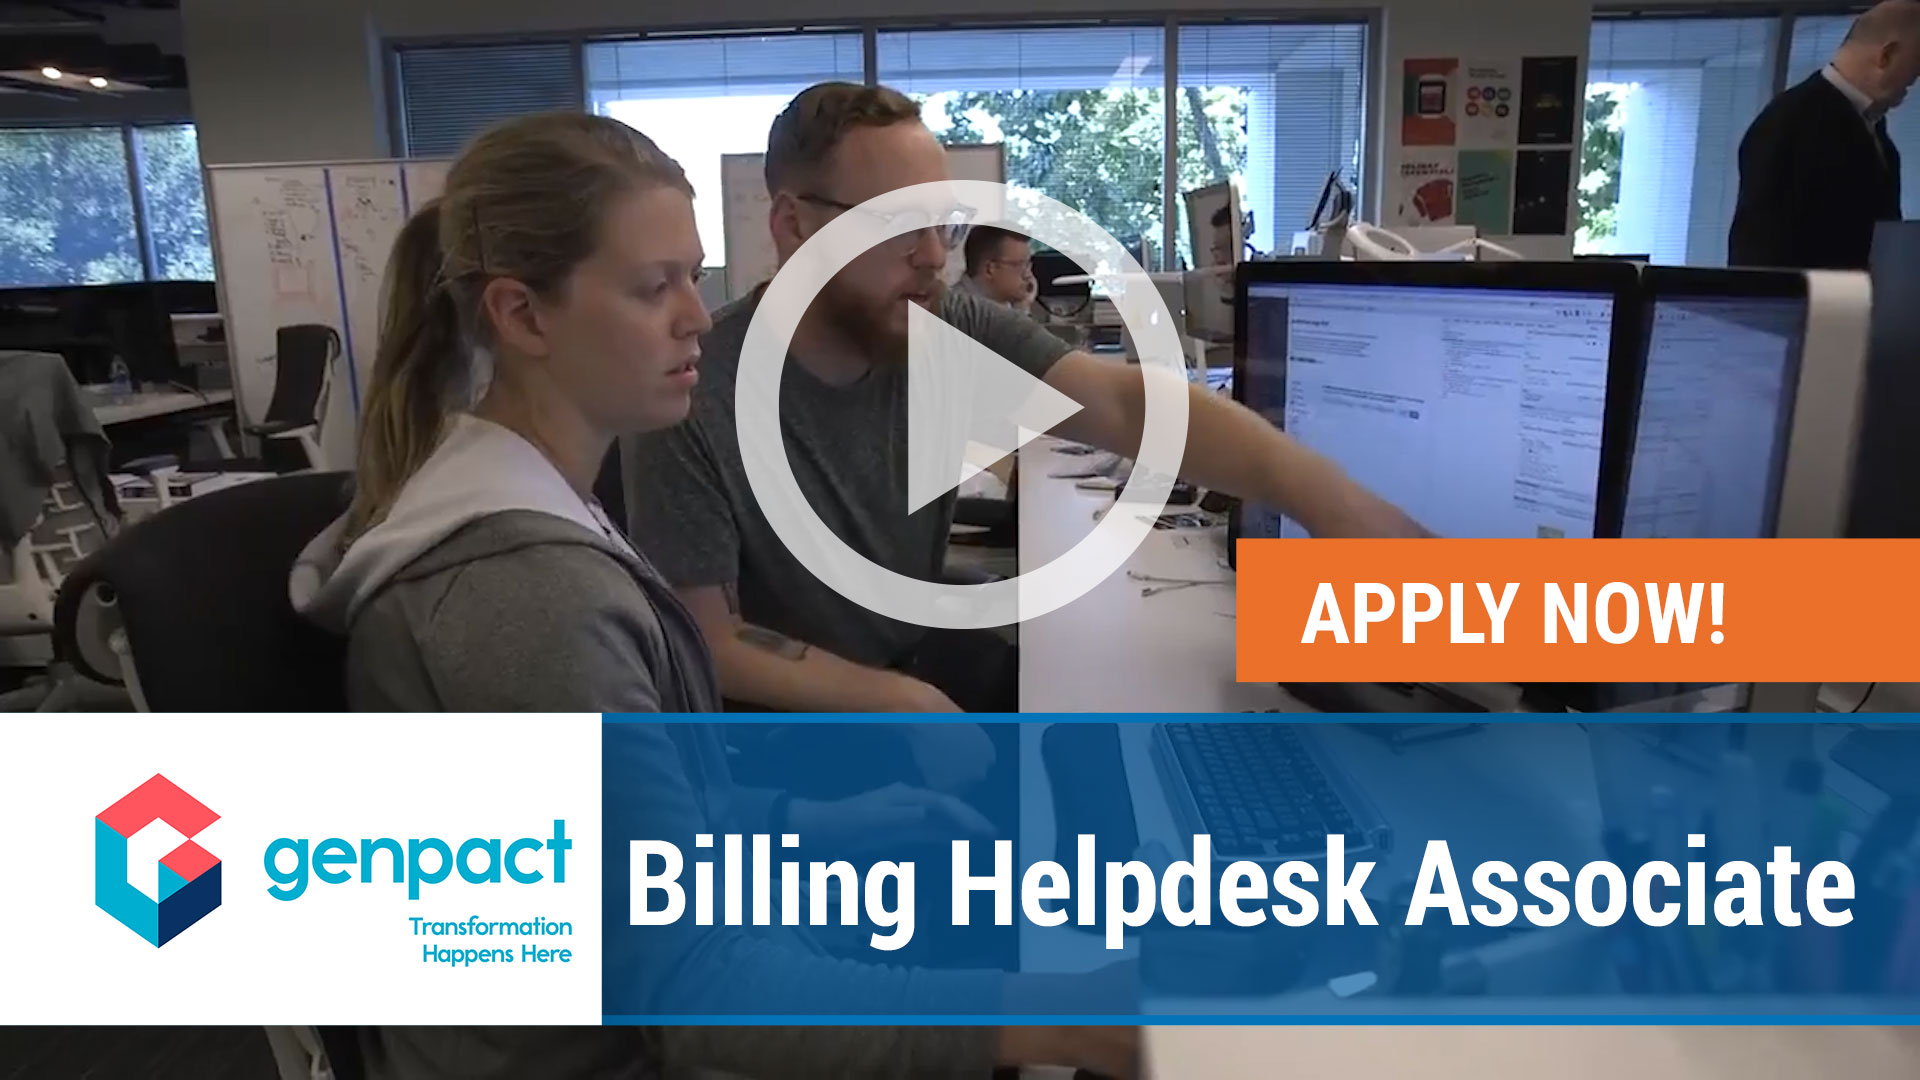 Watch our careers video for available job opening Billing Helpdesk Associate in Wilkes-Barre, PA, USA